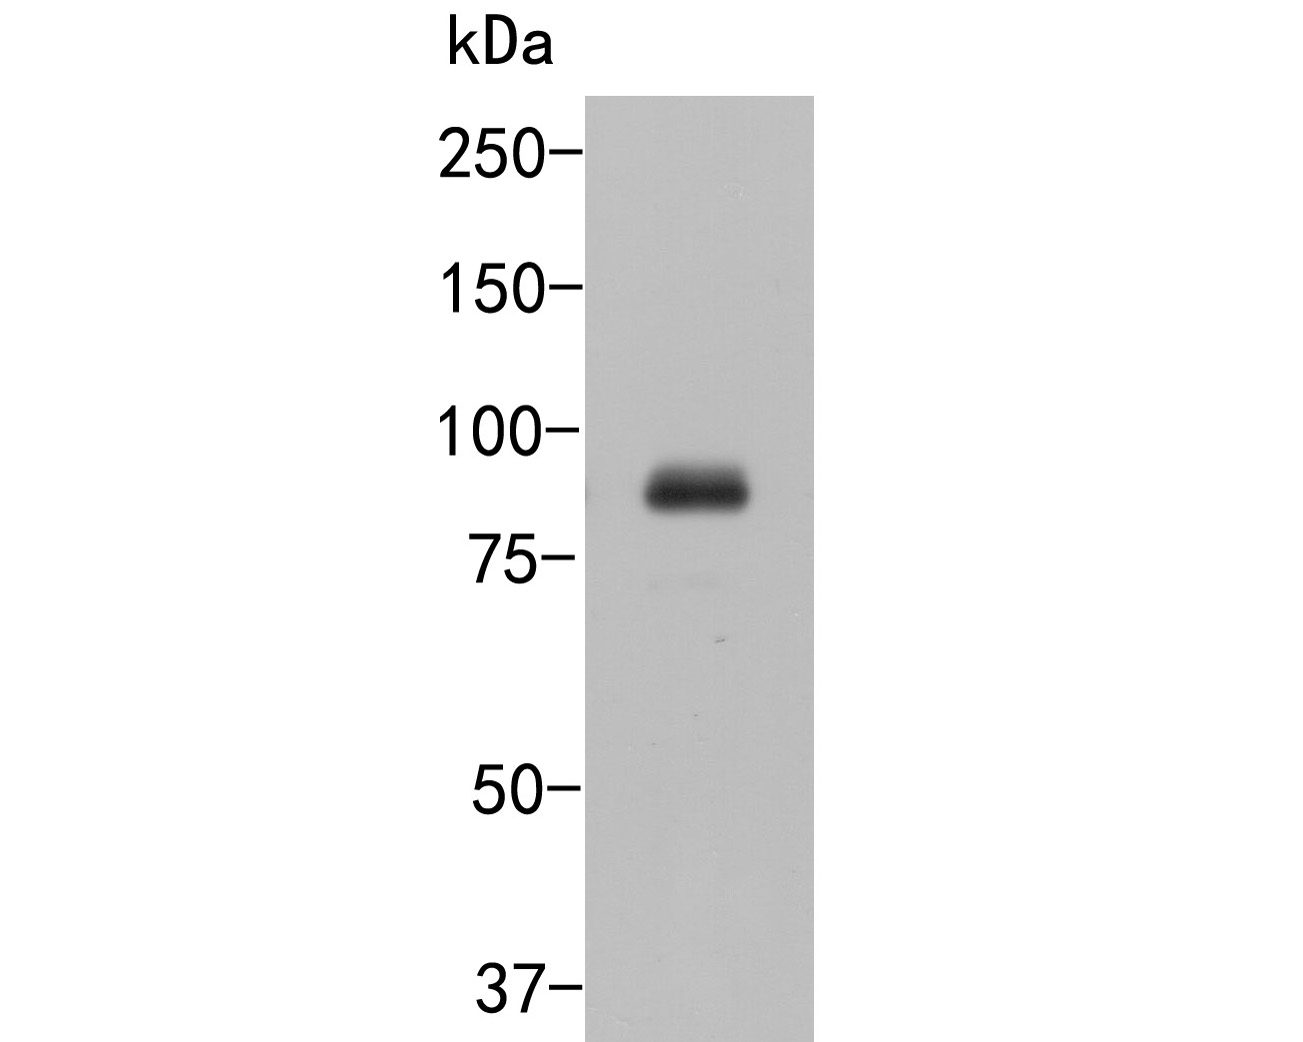 Western blot analysis of Cullin 4B on HUVEC cell lysates. Proteins were transferred to a PVDF membrane and blocked with 5% BSA in PBS for 1 hour at room temperature. The primary antibody (ER2001-65, 1/500) was used in 5% BSA at room temperature for 2 hours. Goat Anti-Rabbit IgG - HRP Secondary Antibody (HA1001) at 1:5,000 dilution was used for 1 hour at room temperature.